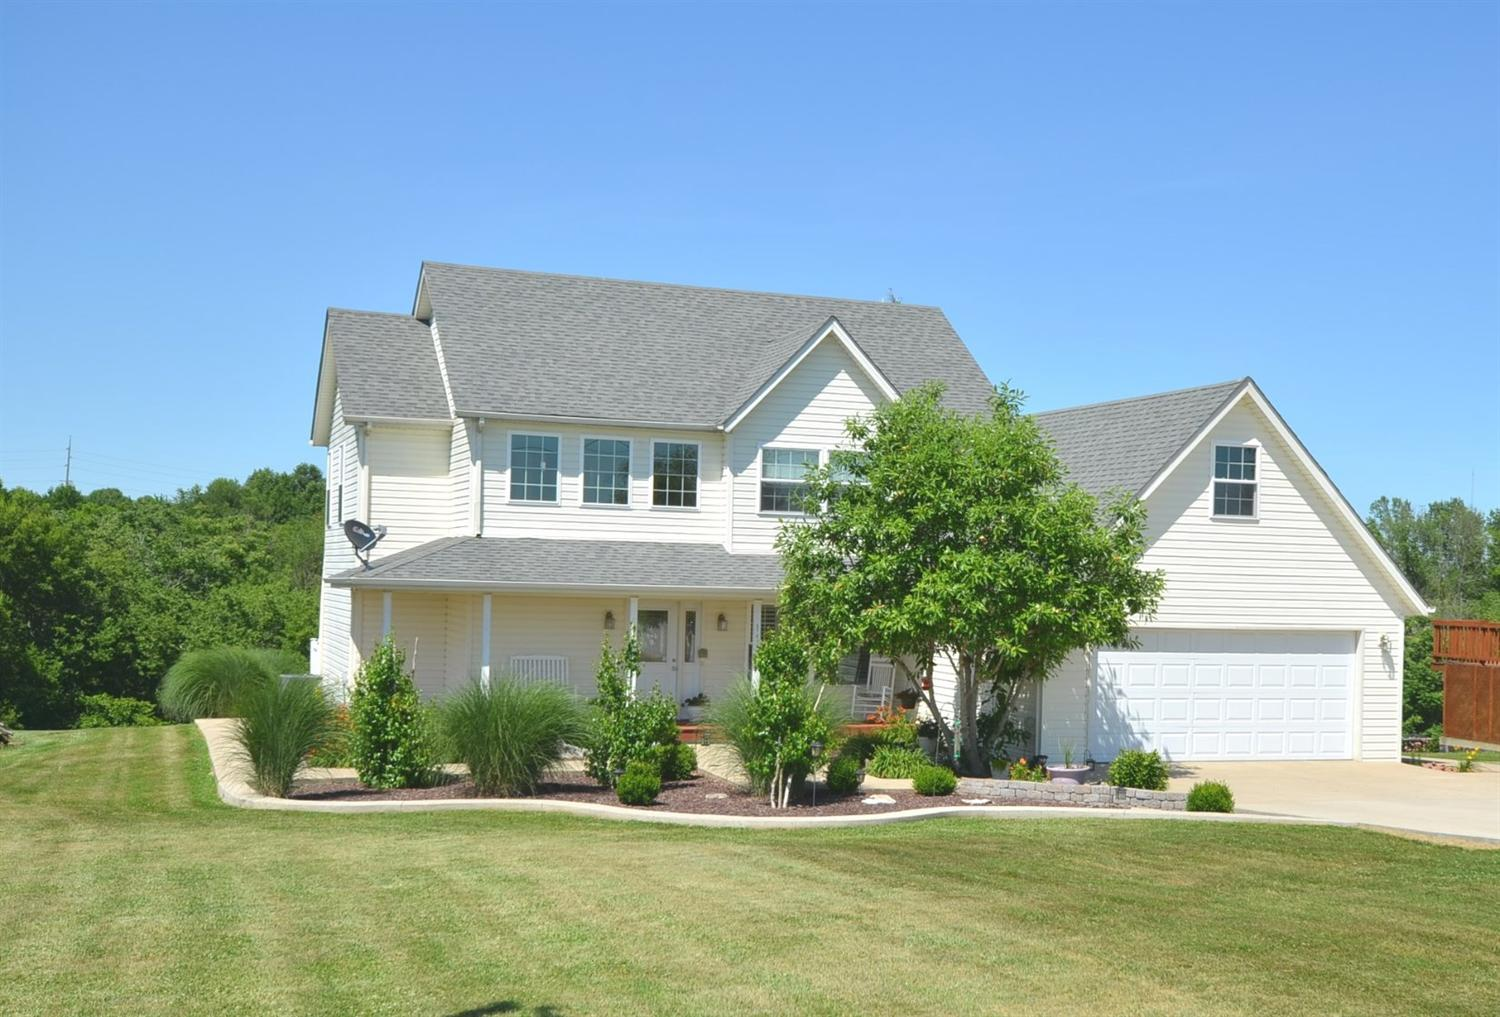 Check%20out%20this%20beautiful%20and%20well%20maintained%20home.%20Located%20on%20a%20private%20drive%20and%20close%20to%20Herrington%20Lake,%20Shakertown,%20Danville%20and%20many%20shopping%20areas.%20Home%20has%20tile%20and%20hardwood%20flooring%20throughout.%20Situated%20on%201%20acre%20lot%20with%20nice%20landscaping,%20front%20porch,%20large%20rear%20deck,%20and%20nice%20spacious%20driveway.%20Home%20consists%20of%203%20bedrooms,%202%201/2%20baths,%20and%202%20car%20garage.%20Must%20See%20Inside!